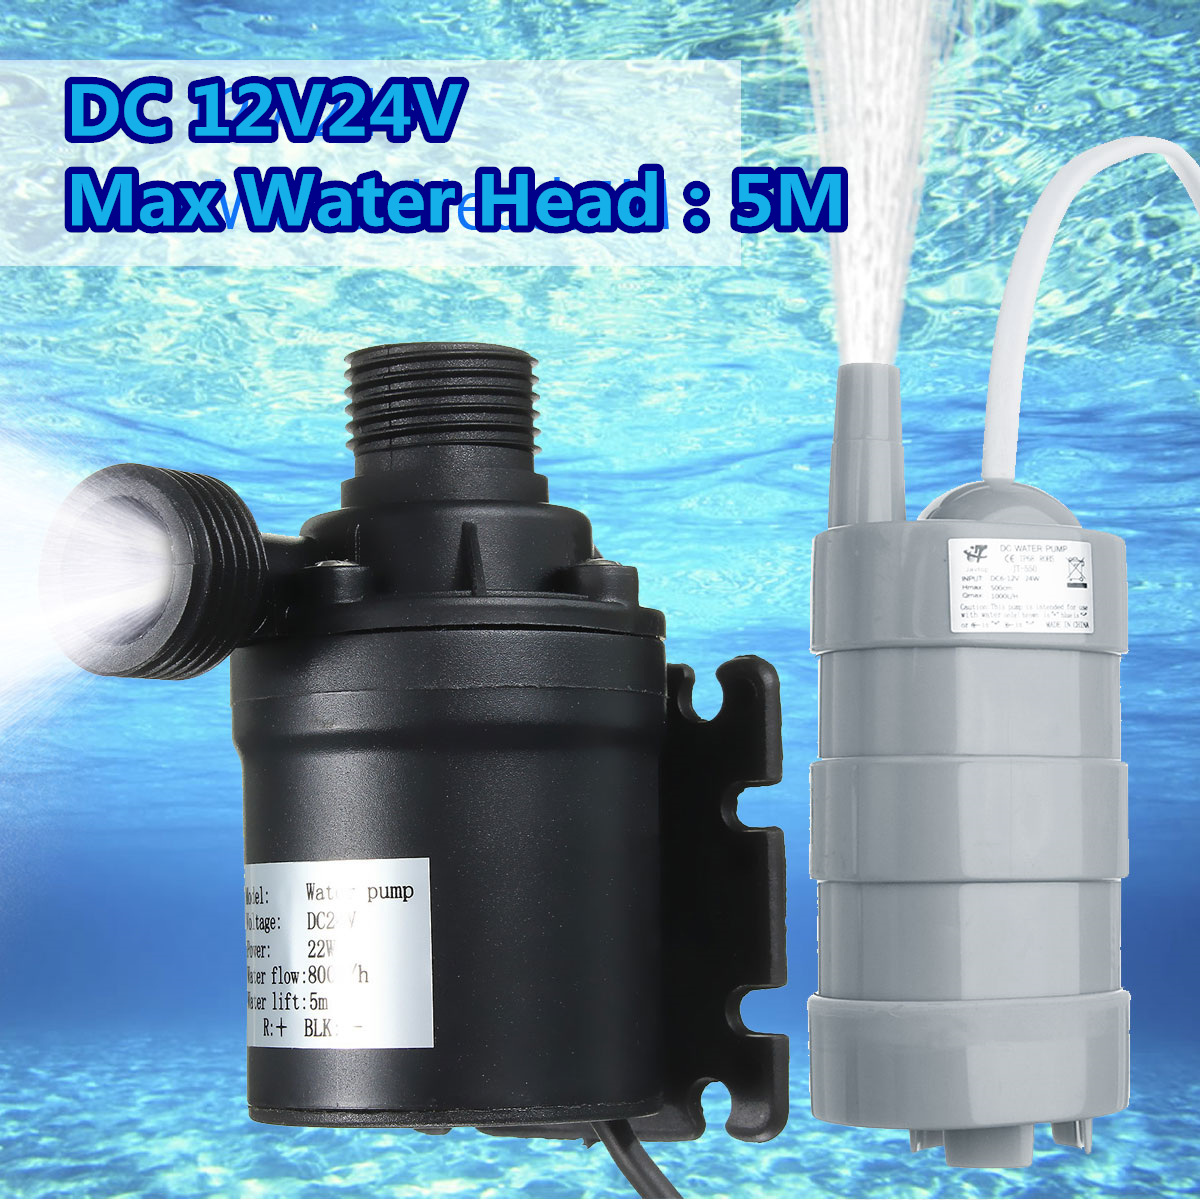 DC 12V 24V Solar Pump Brushless Magnetic Submersible Water Pump 5M Lift for Pond Rockery Garden Fountain 1000L/H сапоги tervolina сапоги в стиле чулок стрейч